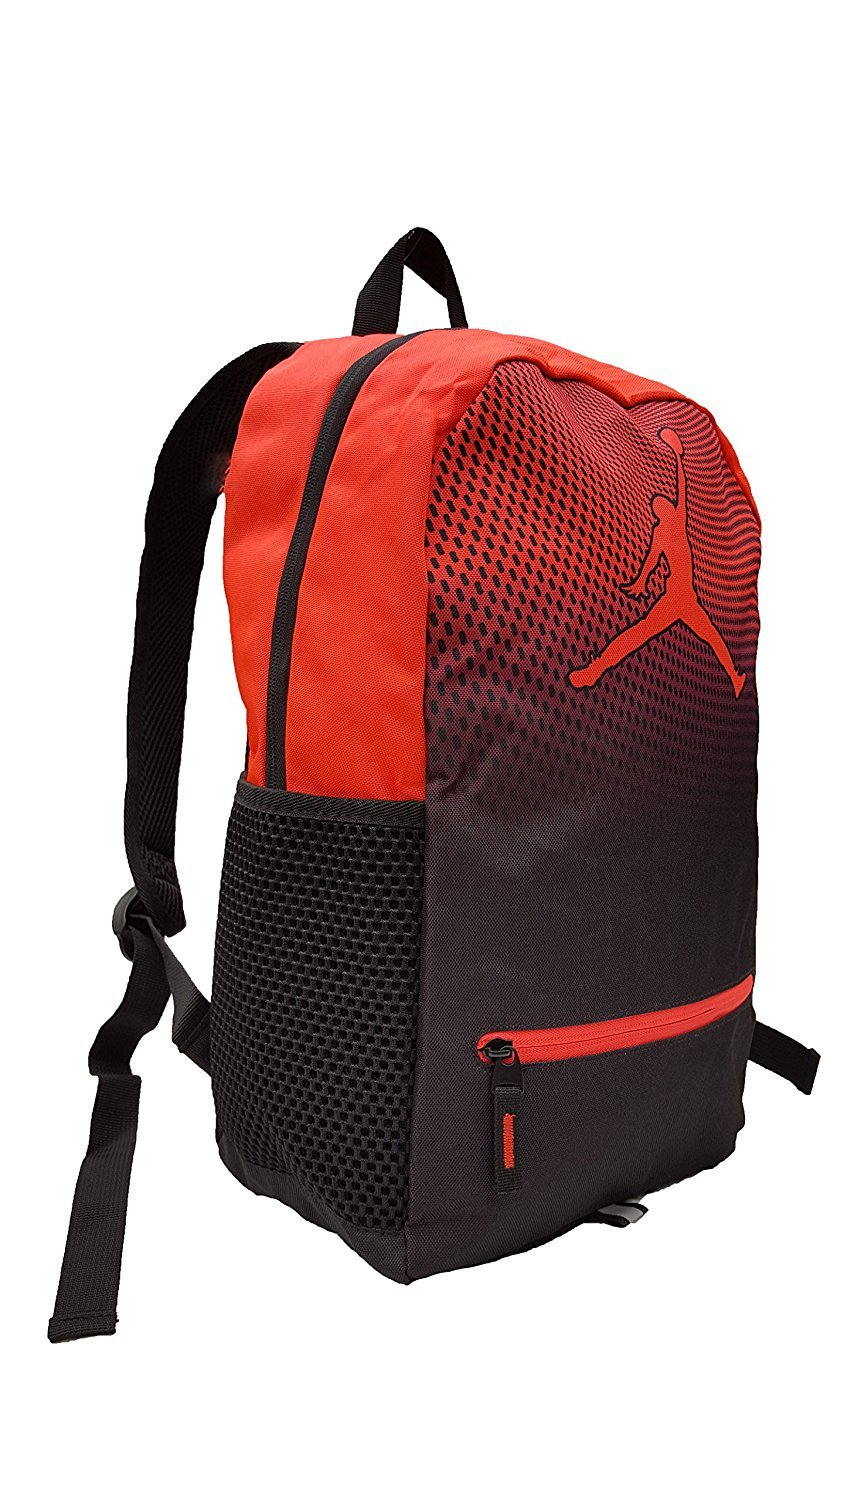 timeless design 451f7 21ed1 Nike Air Jordan Jumpman Sling Backpack Bag Red